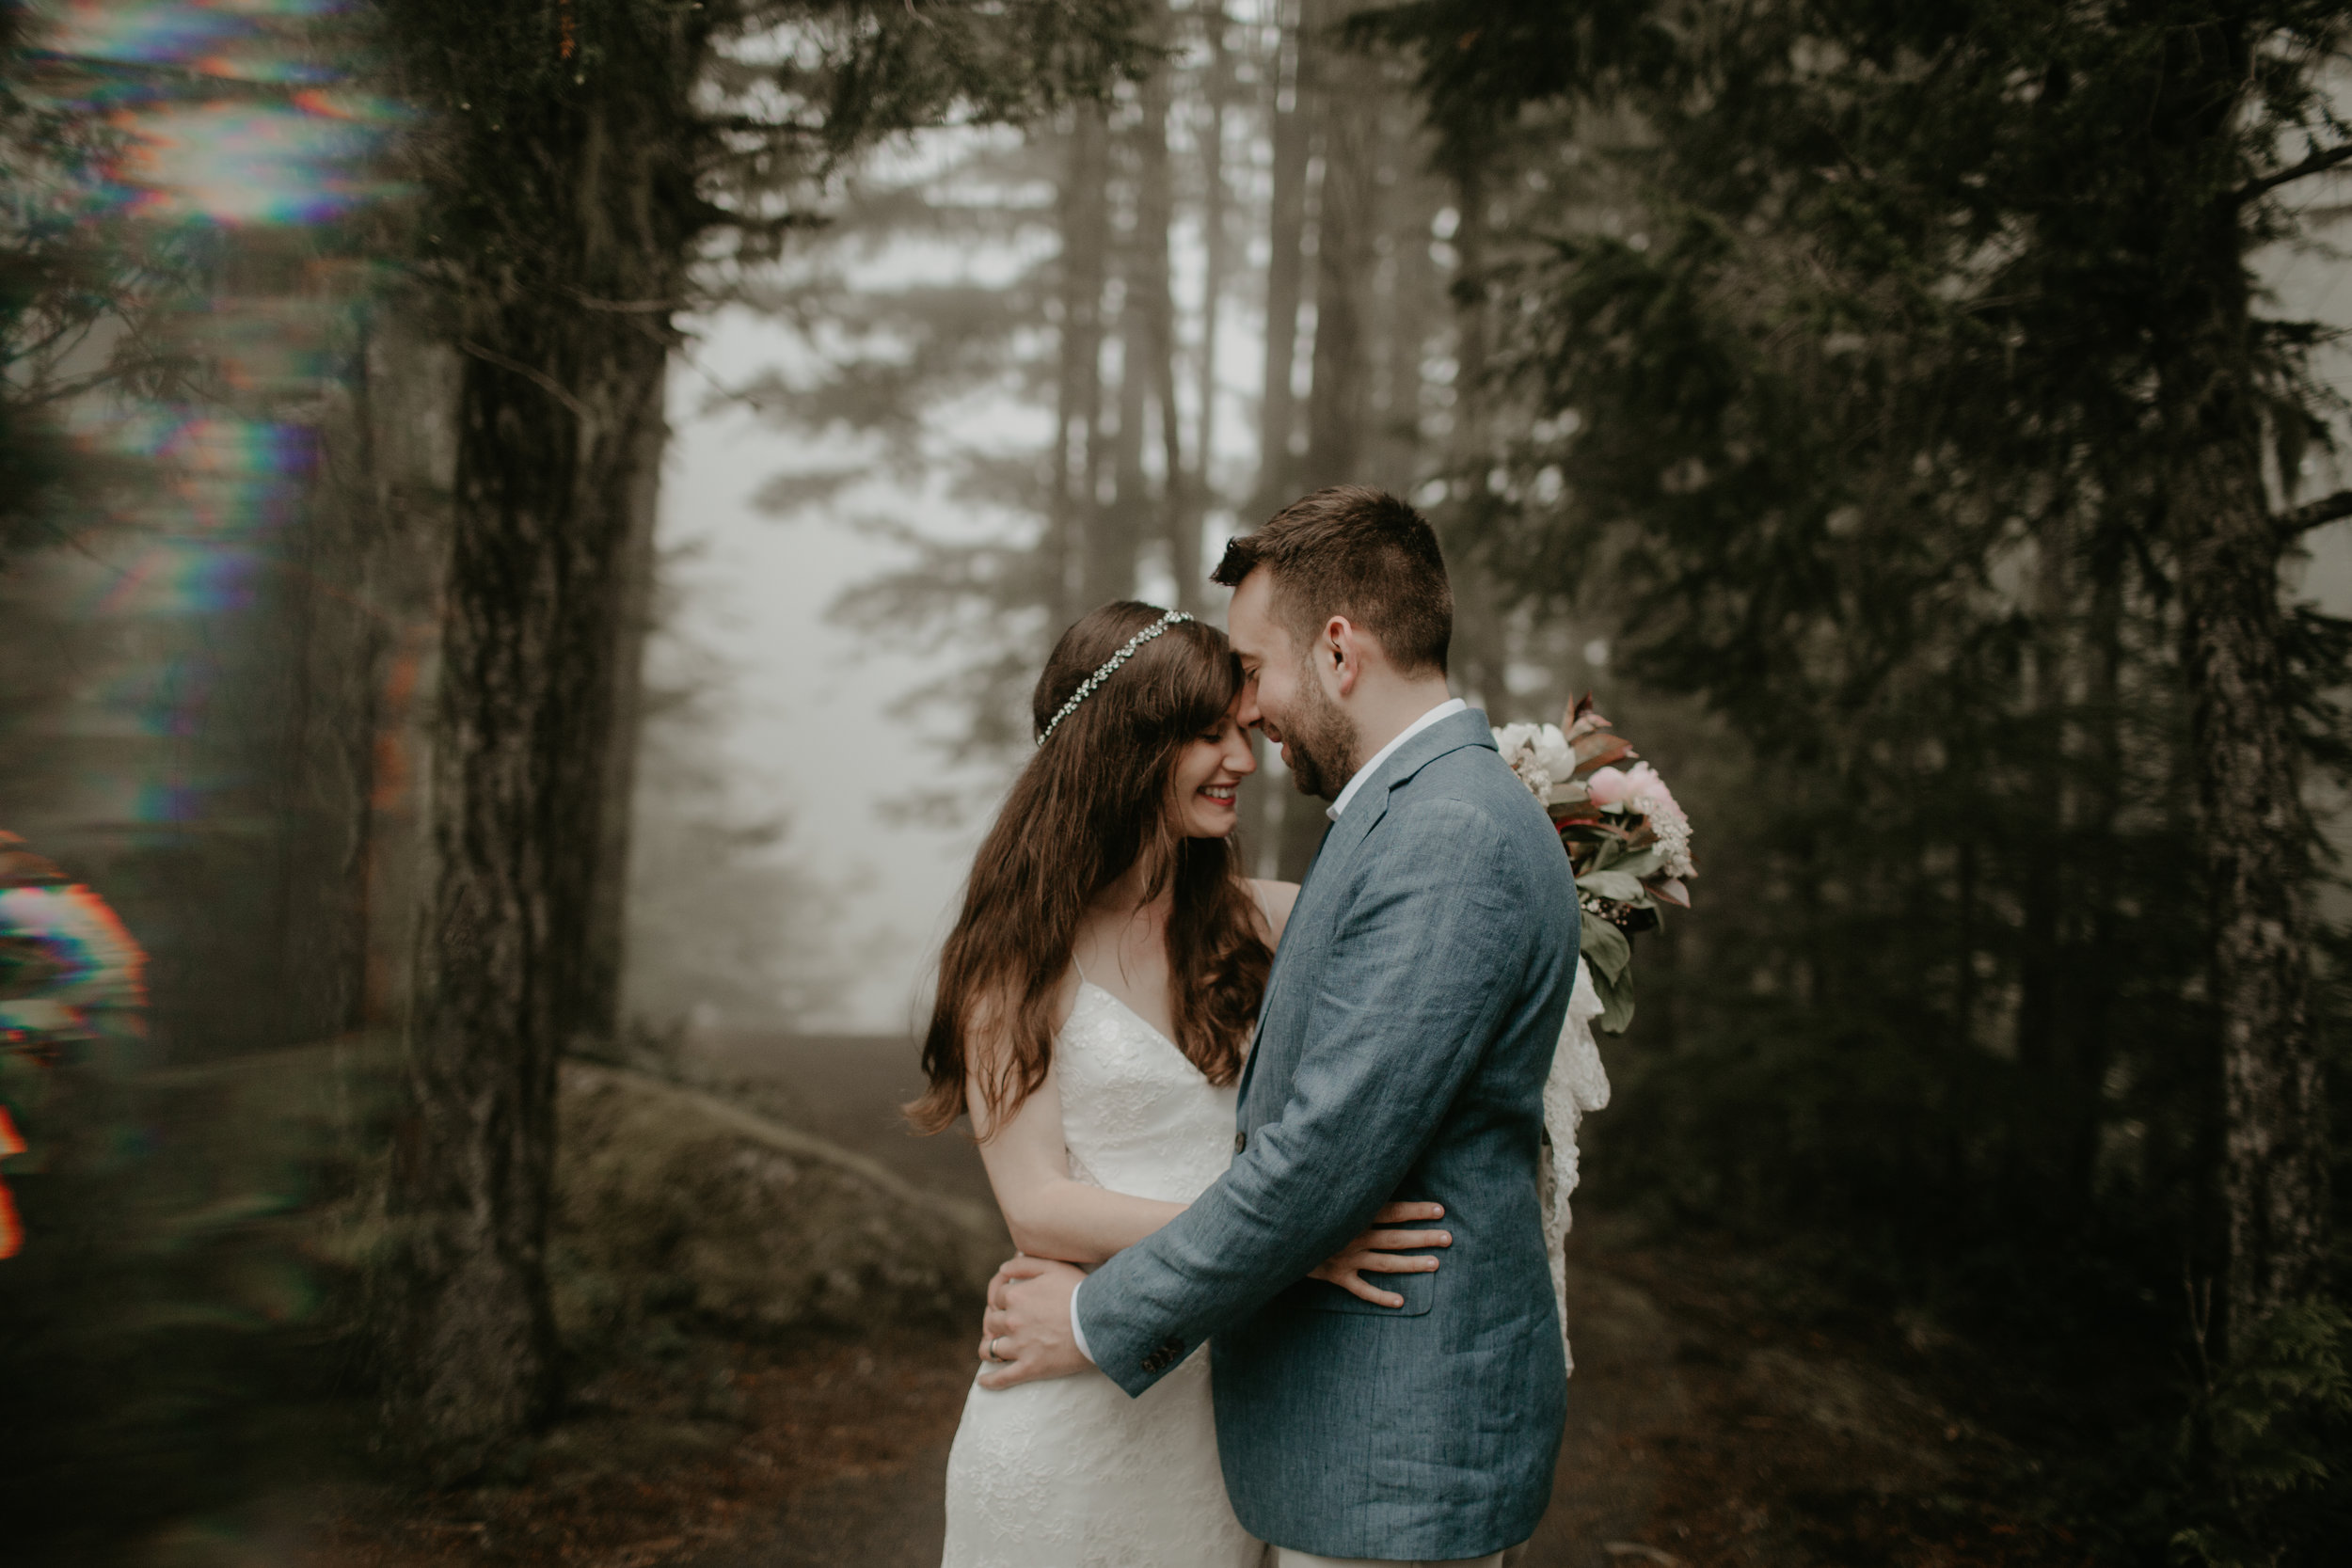 PNW-elopement-wedding-engagement-olympic national park-port angeles-hurricane ridge-lake crescent-kayla dawn photography- photographer-photography-kayladawnphoto-138.jpg